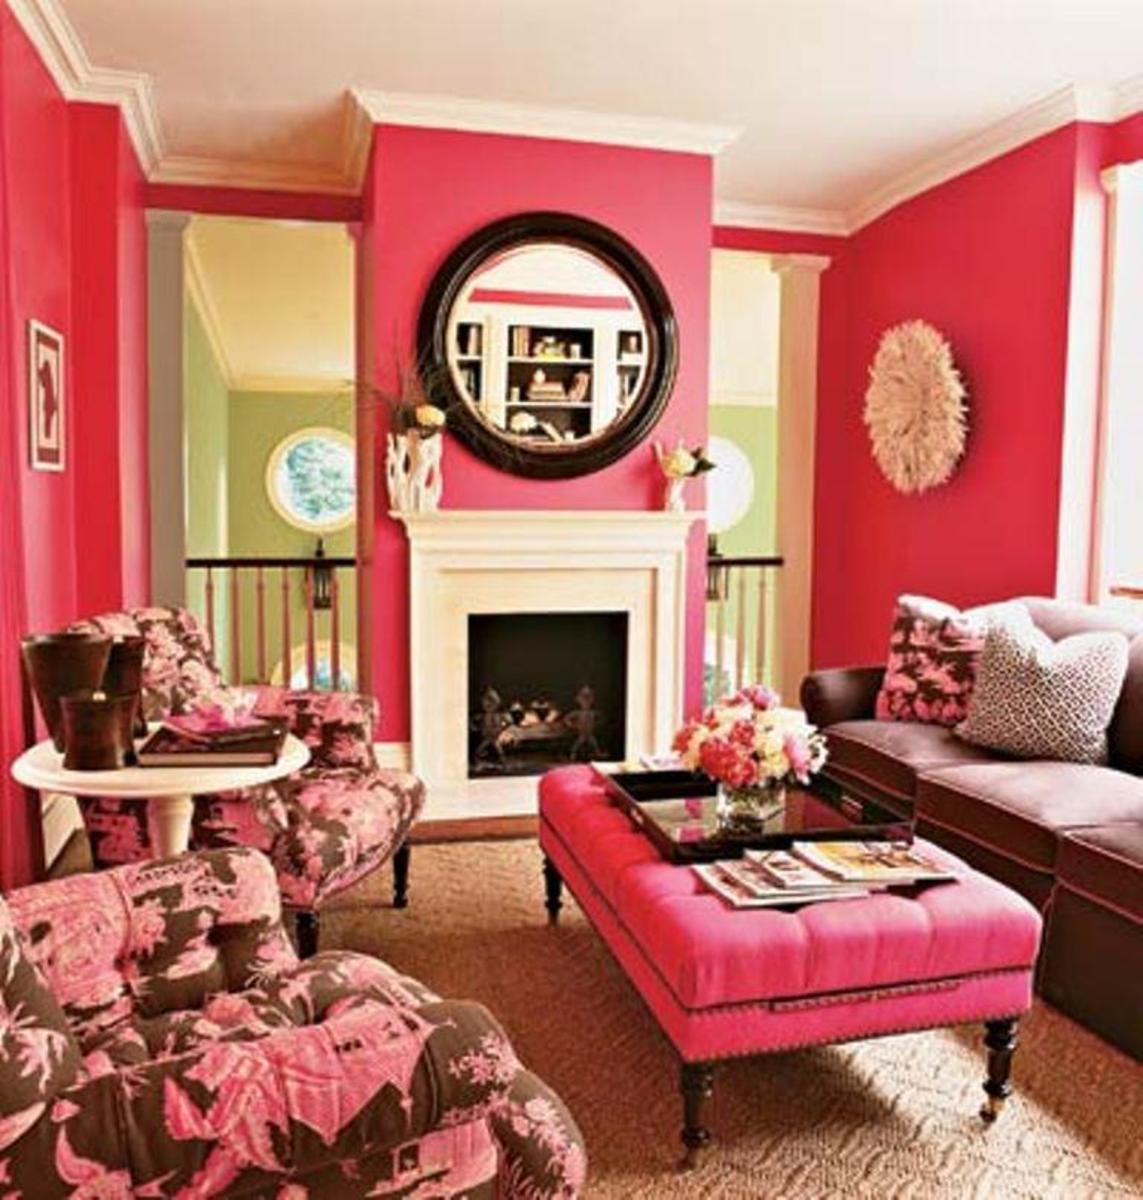 Sophisticated Living Room in Pink